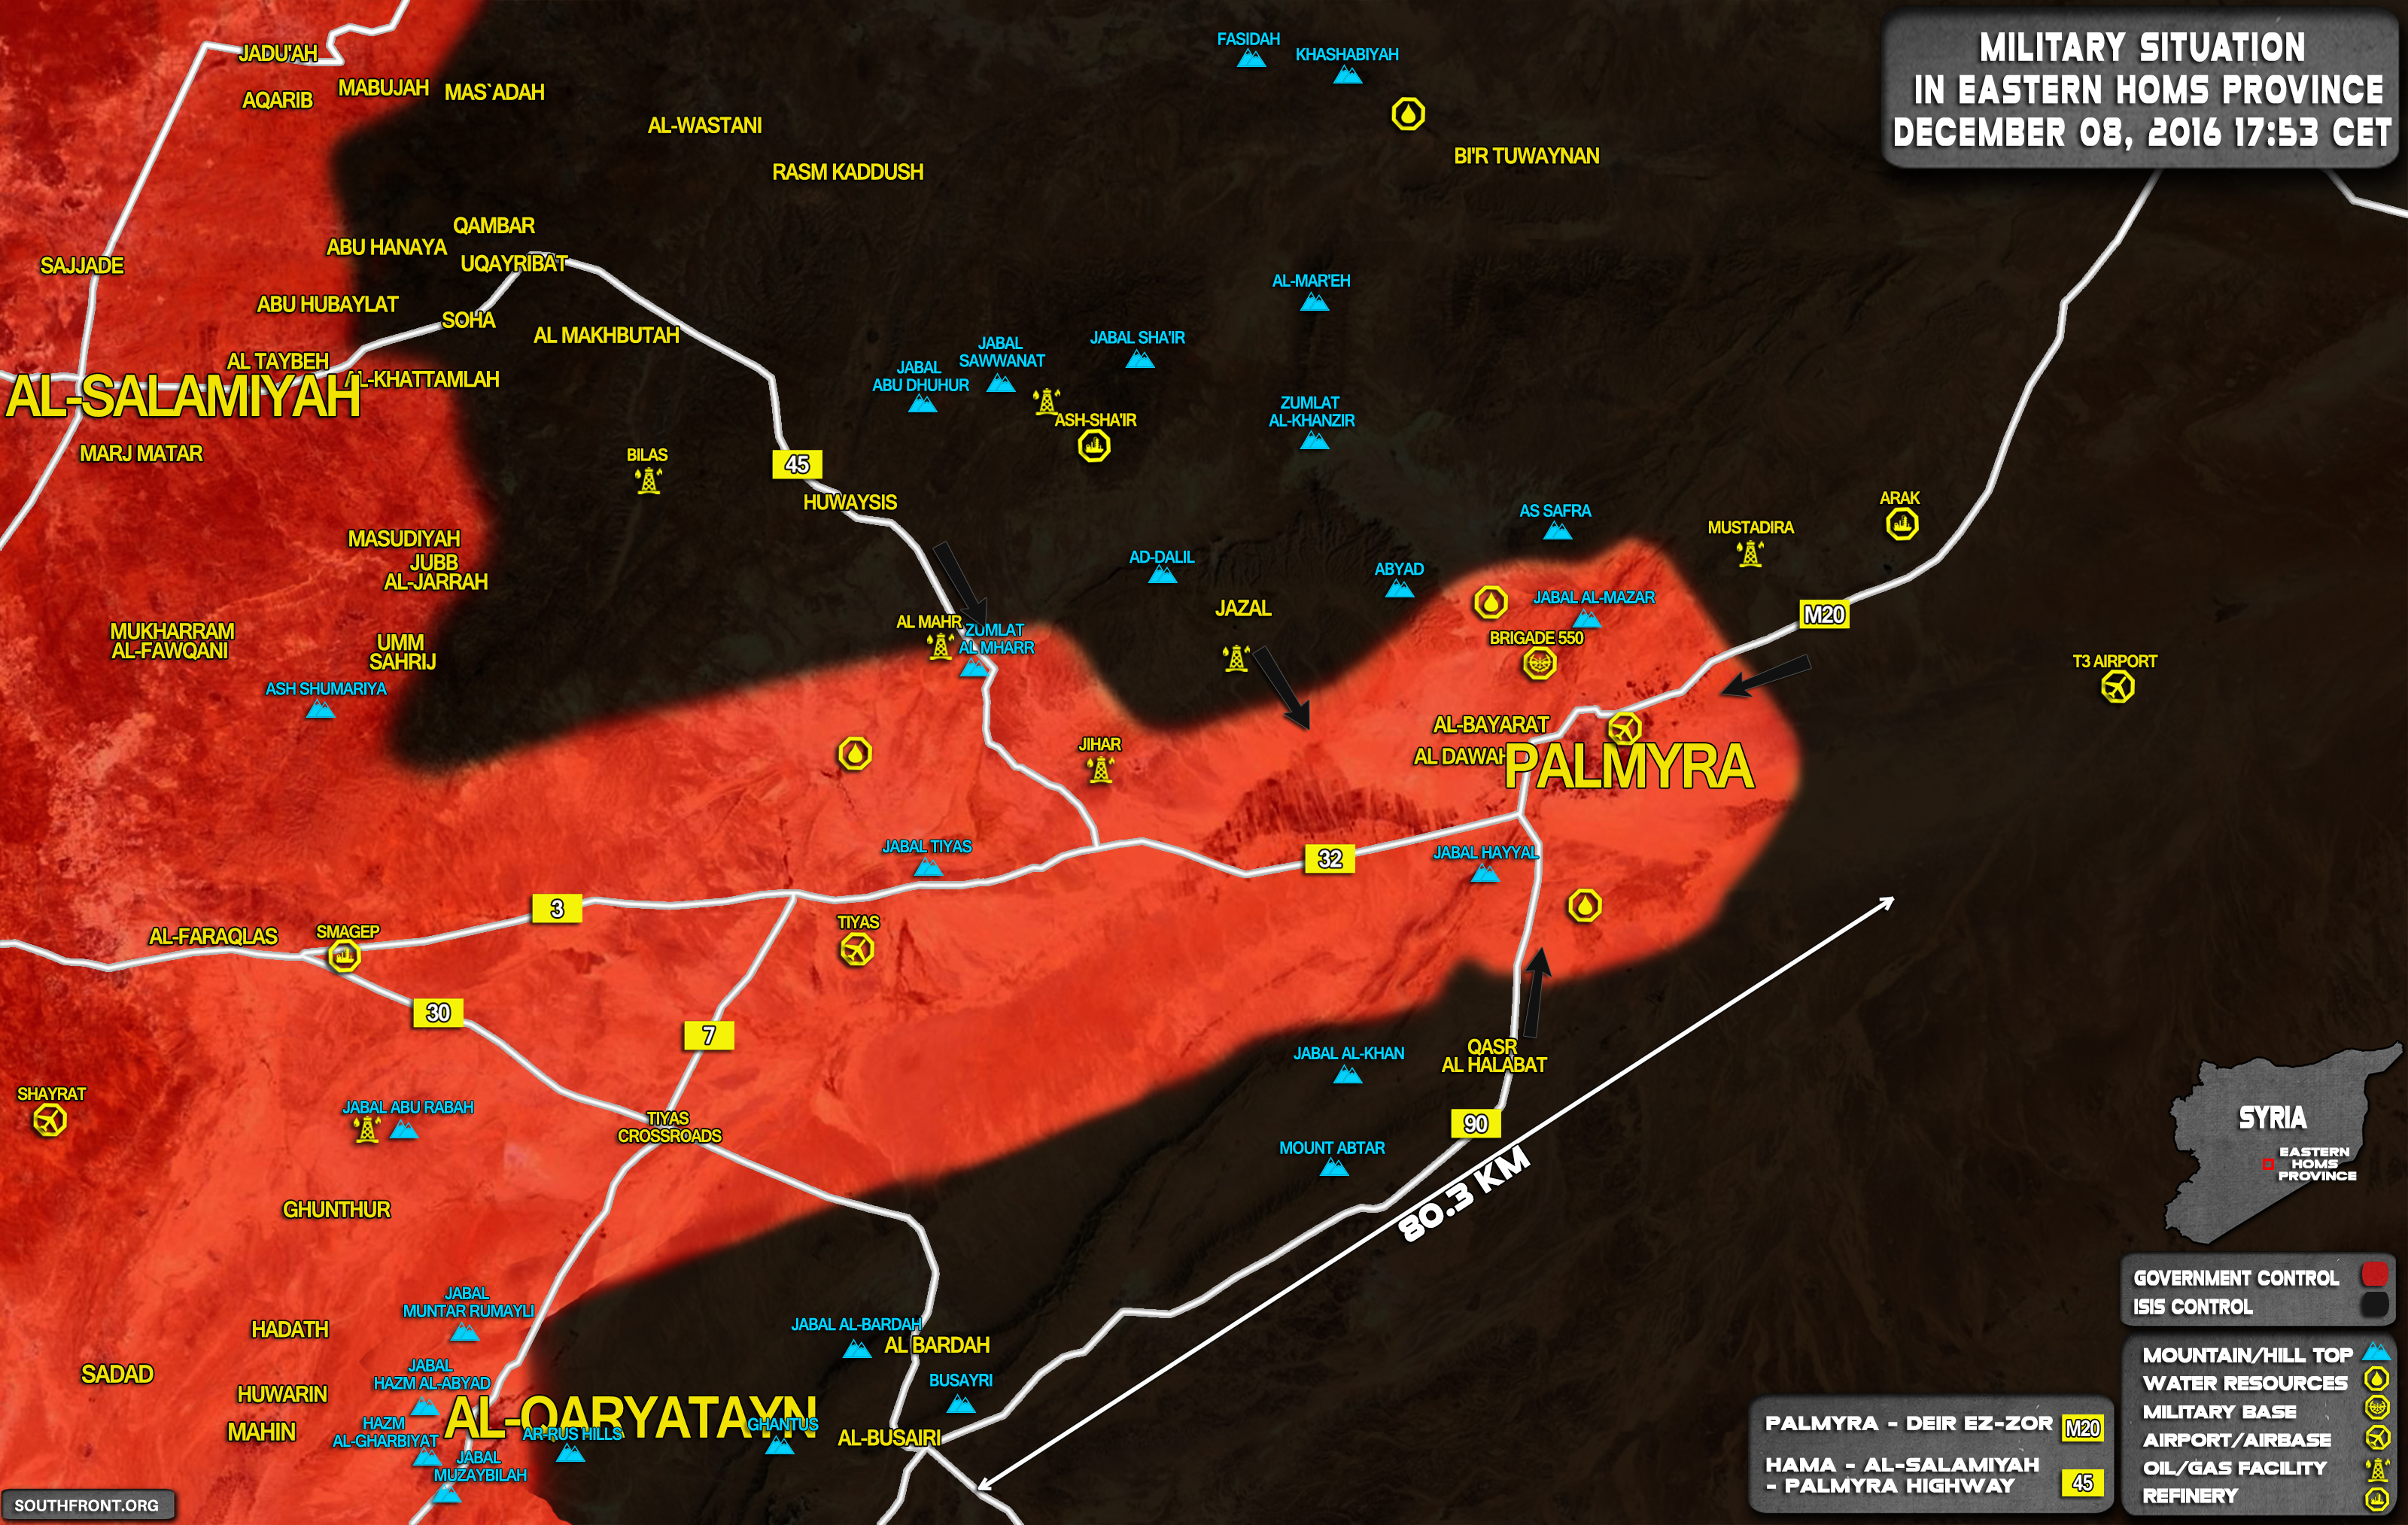 Map Update Military Situation In Area Of Palmyra On December 8 2016